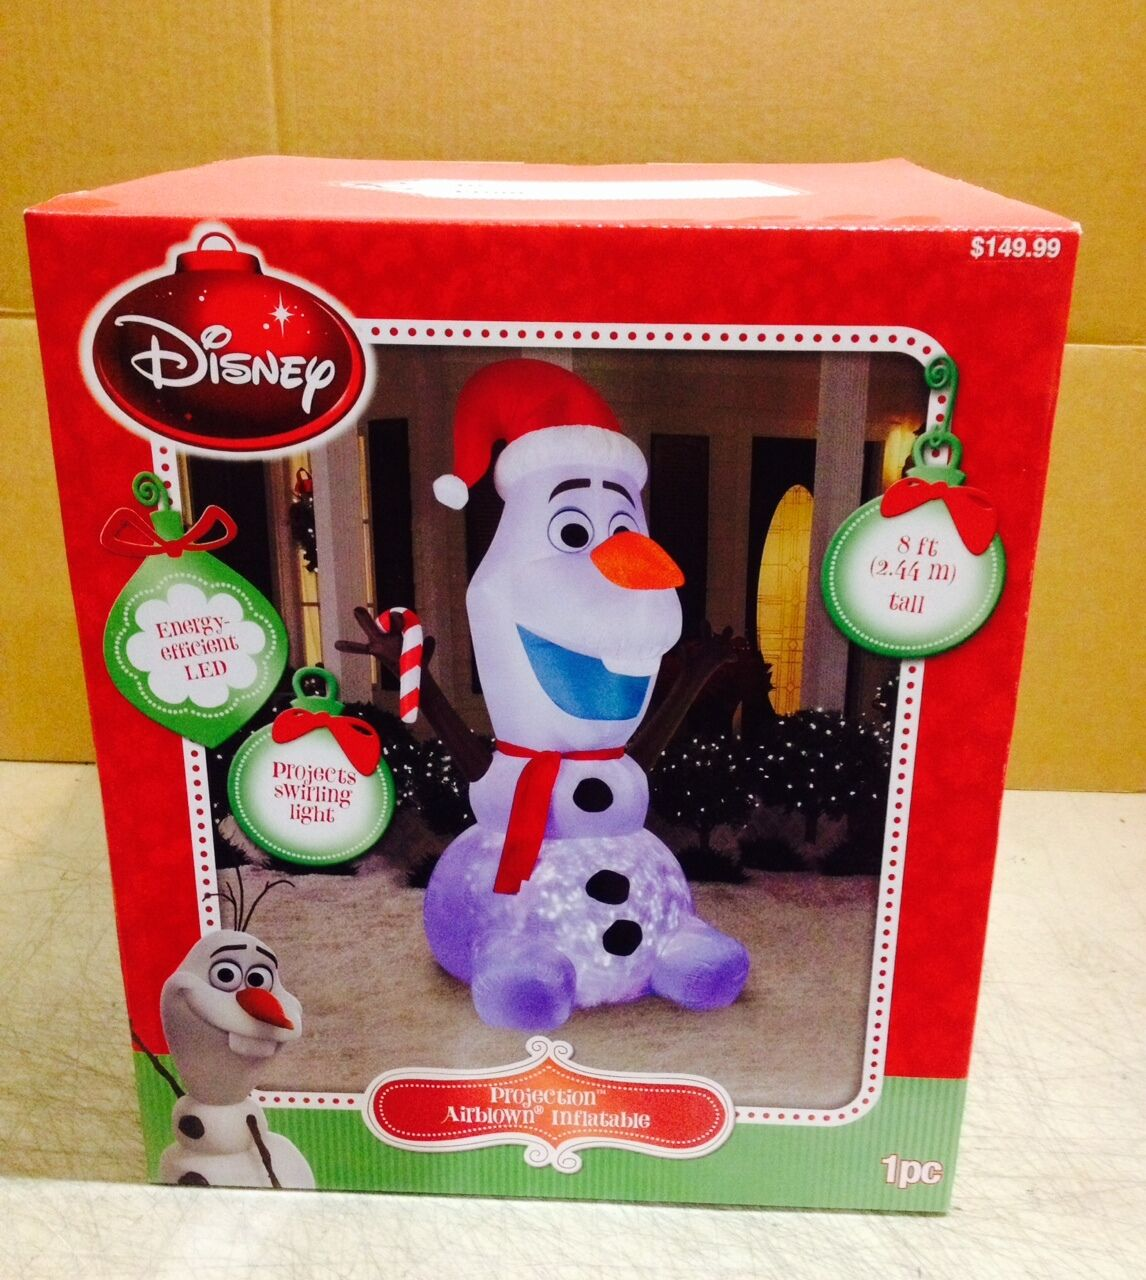 8' Disney Frozen Olaf Projection Swirling Light Christmas Airblown Inflatable